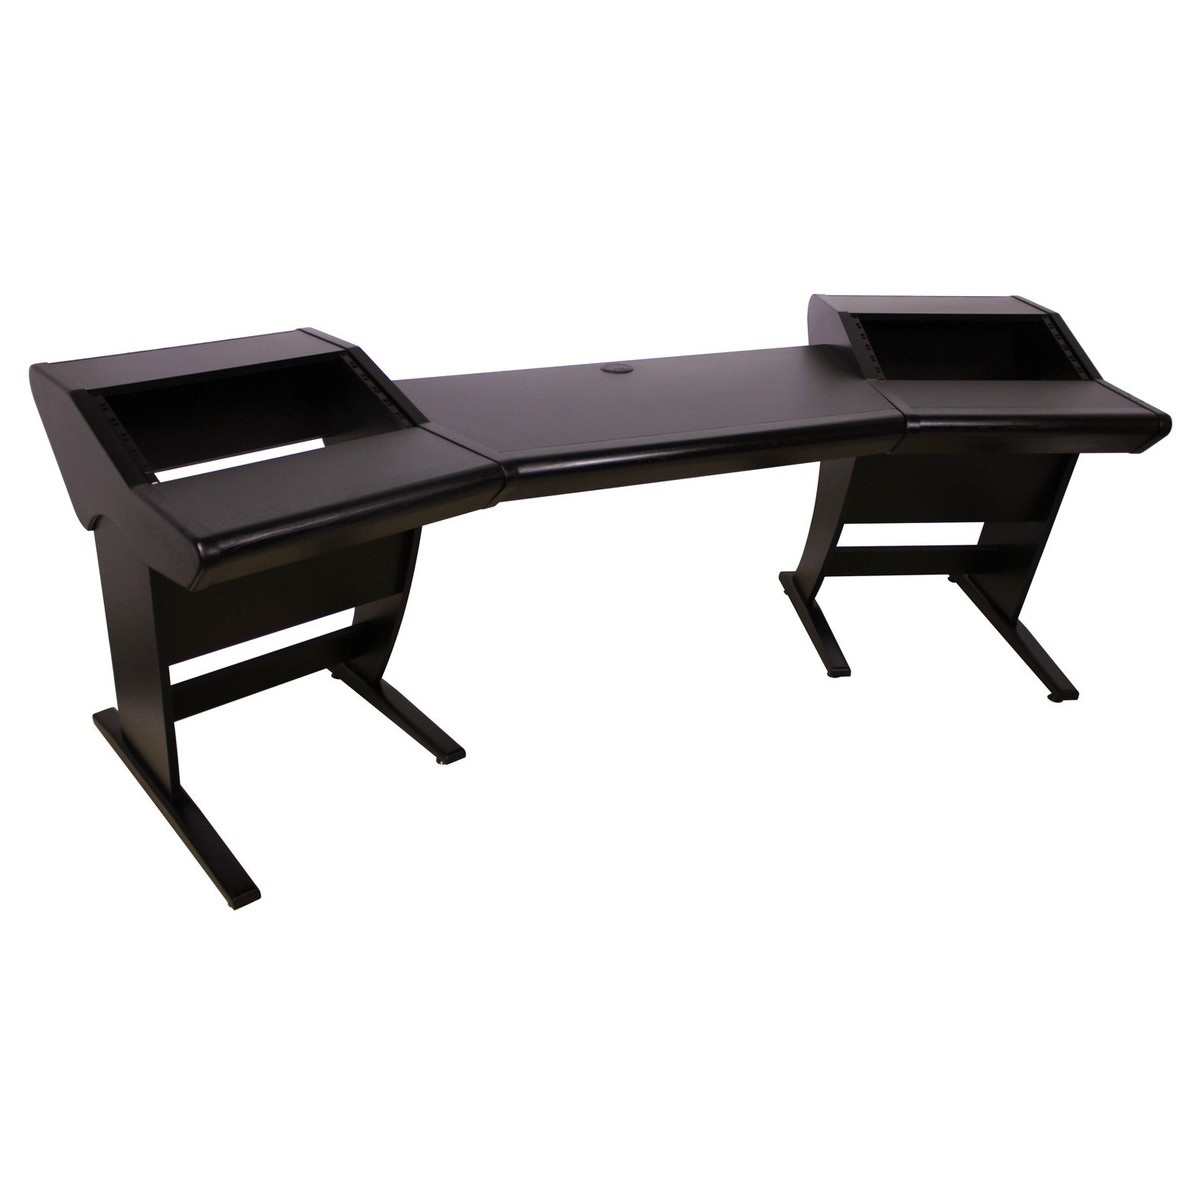 Zaor ONDA Studio Desk, Angled, Black - Angled. Loading zoom · Zaor ONDA Studio  Desk